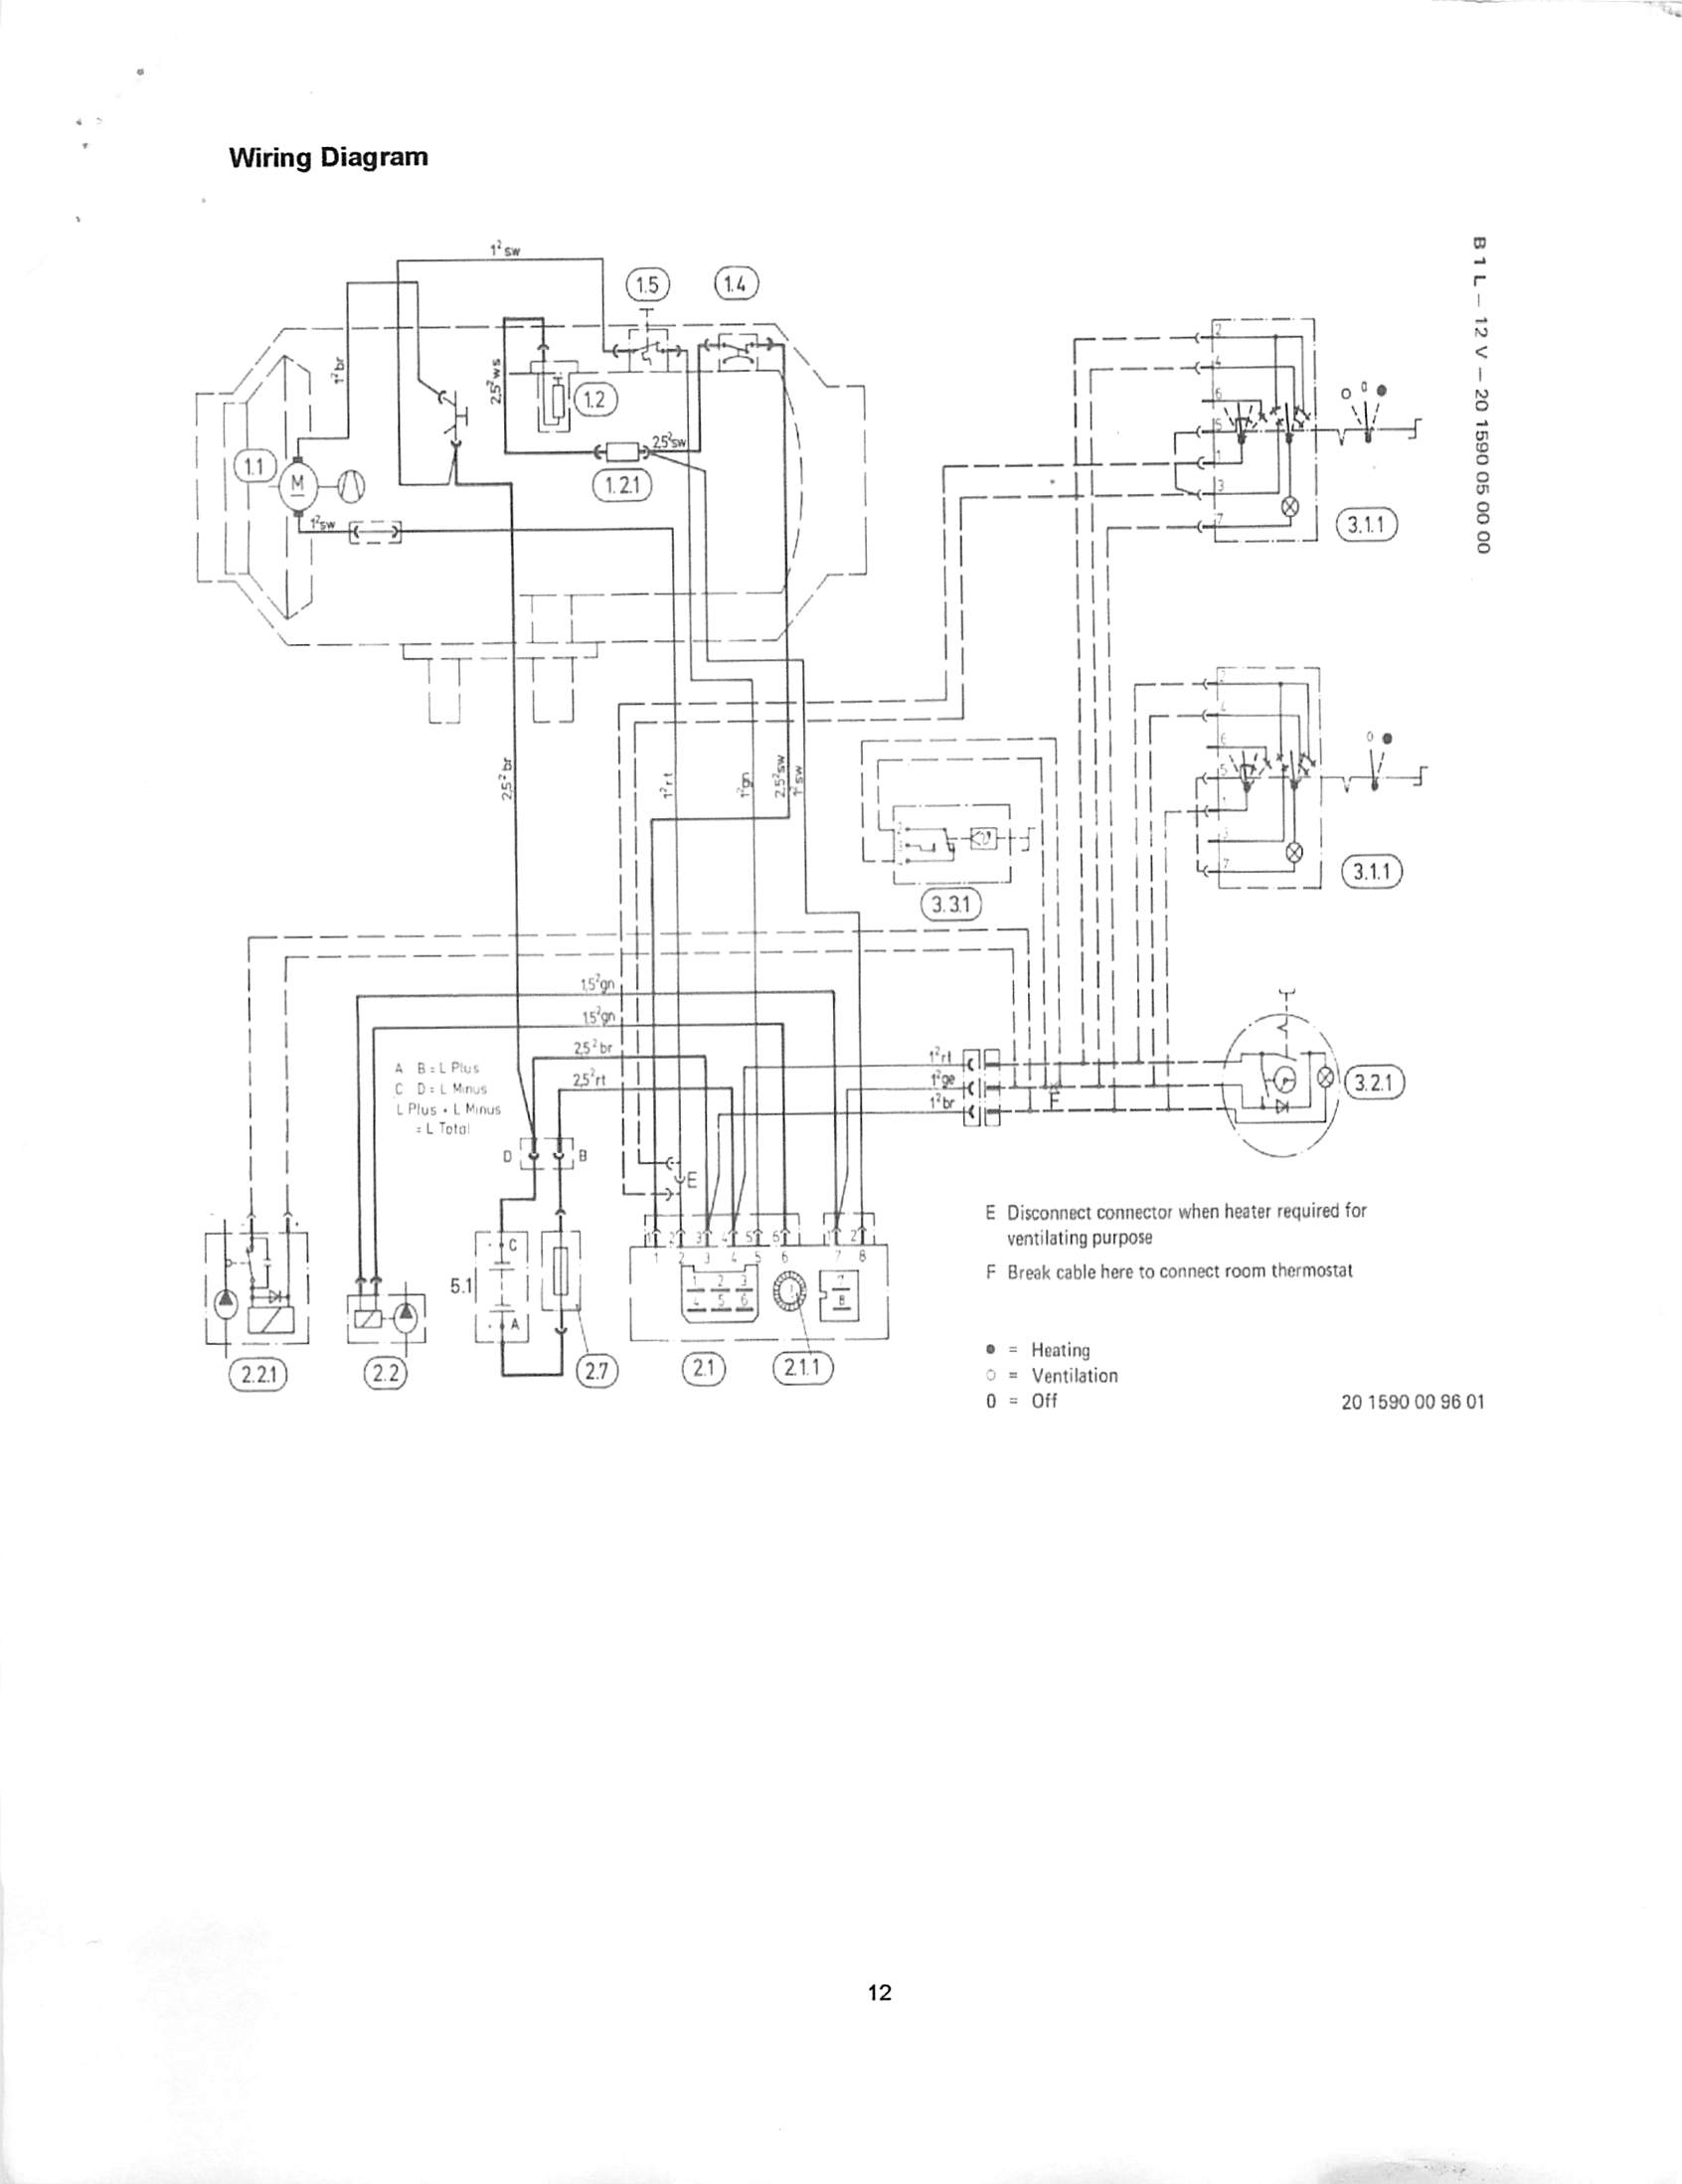 Pt6a 20 Engine Diagram besides Dodge Ram 02 Sensor Locations also 1985 Jeep Cj7 6 Cylinder Engine together with P 0900c152801bf8c2 besides Porsche 356 Generator Brush Wear Peking To Paris. on vw wiring diagrams